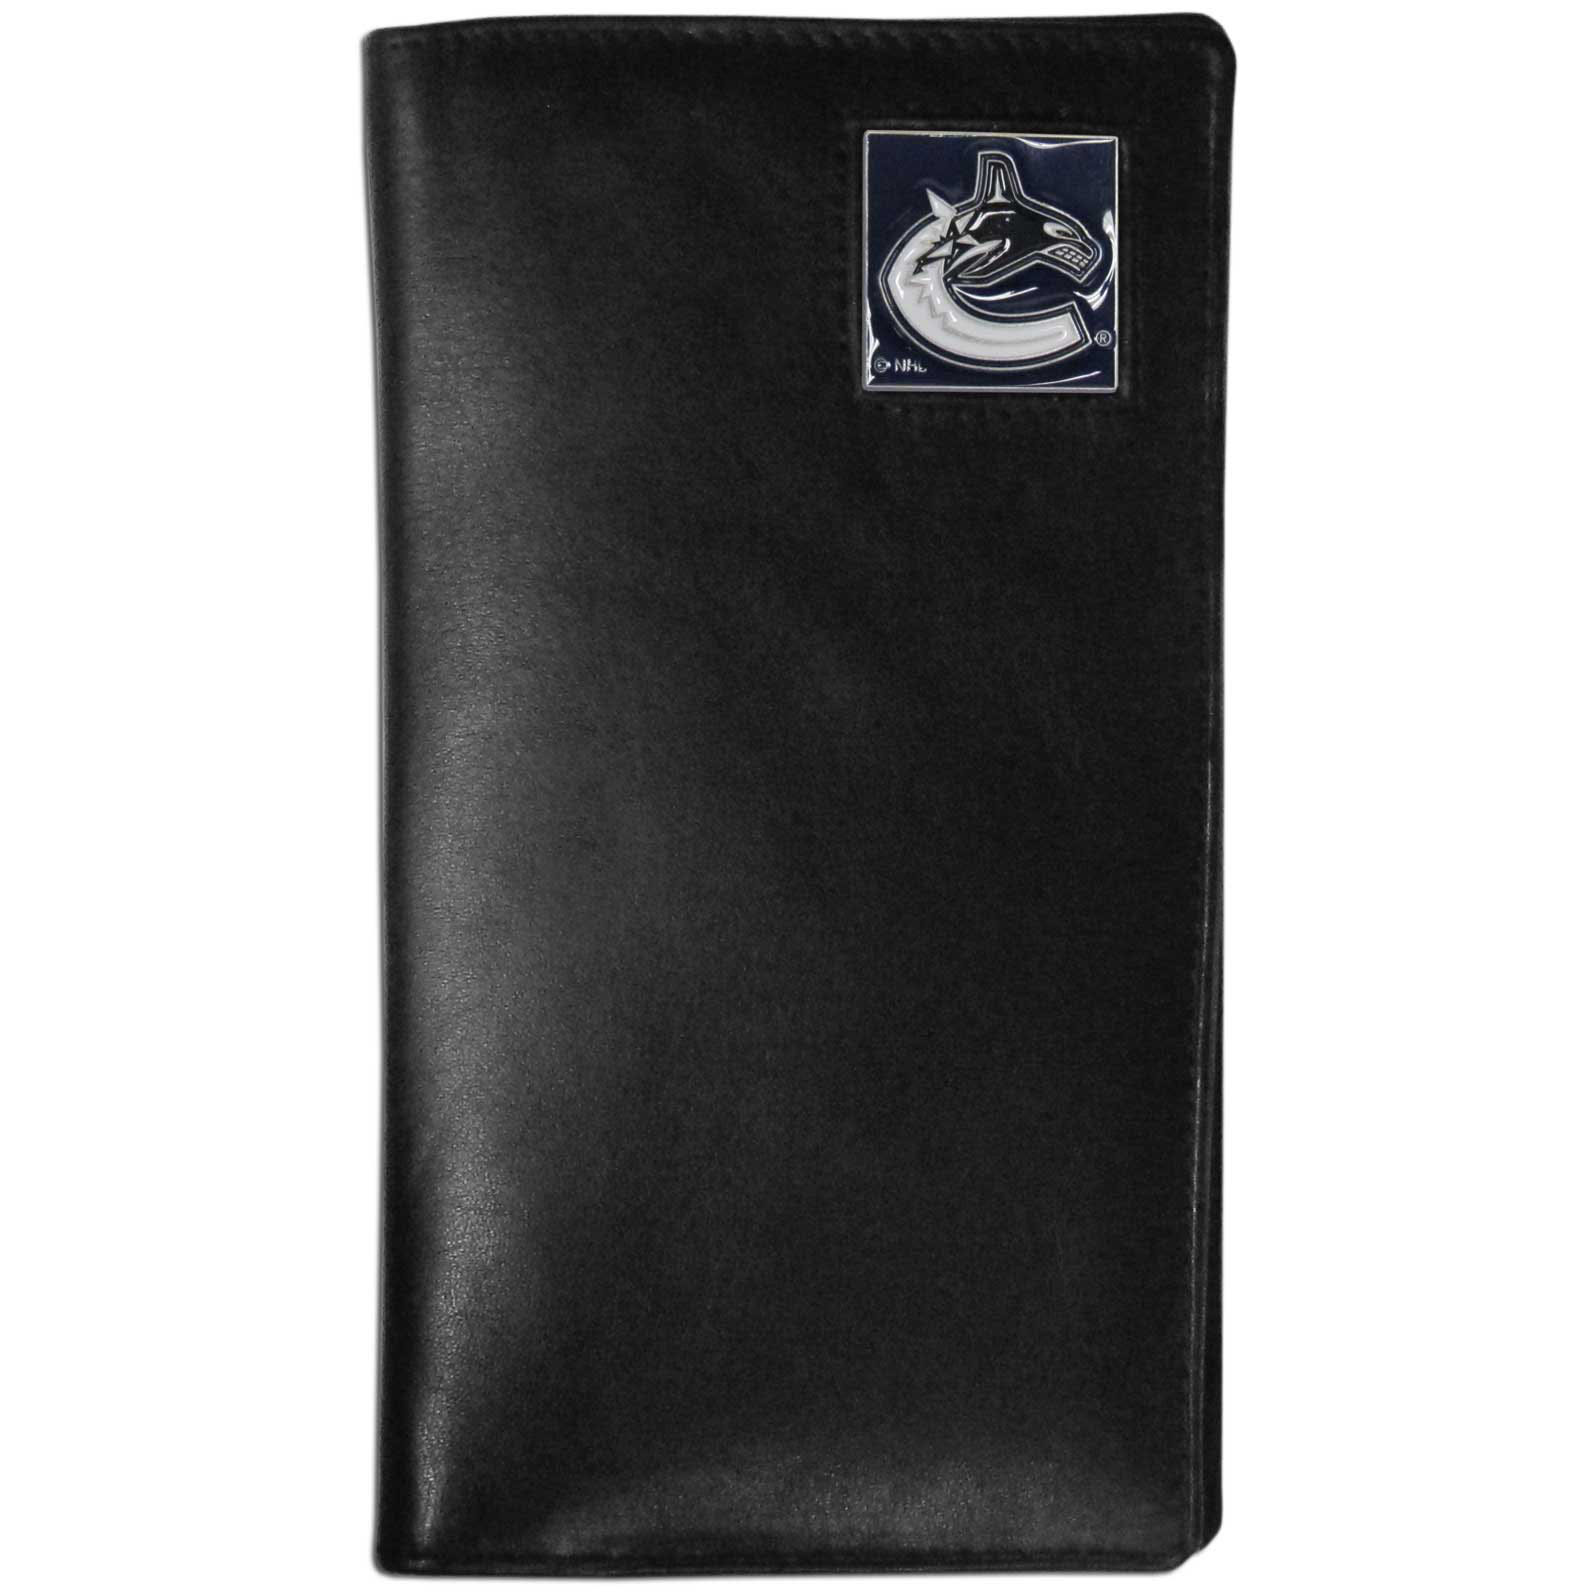 Vancouver Canucks Tall Leather Wallet - This officially licensed Vancouver Canucks tall leather wallet cover is made of high quality leather with a fully cast metal Vancouver Canucks emblem with enameled Vancouver Canucks color detail. The cover fits both side and top loaded checks and includes a large zippered pocket, windowed ID slot, numerous credit card slots and billfold pocket. Thank you for visiting CrazedOutSports